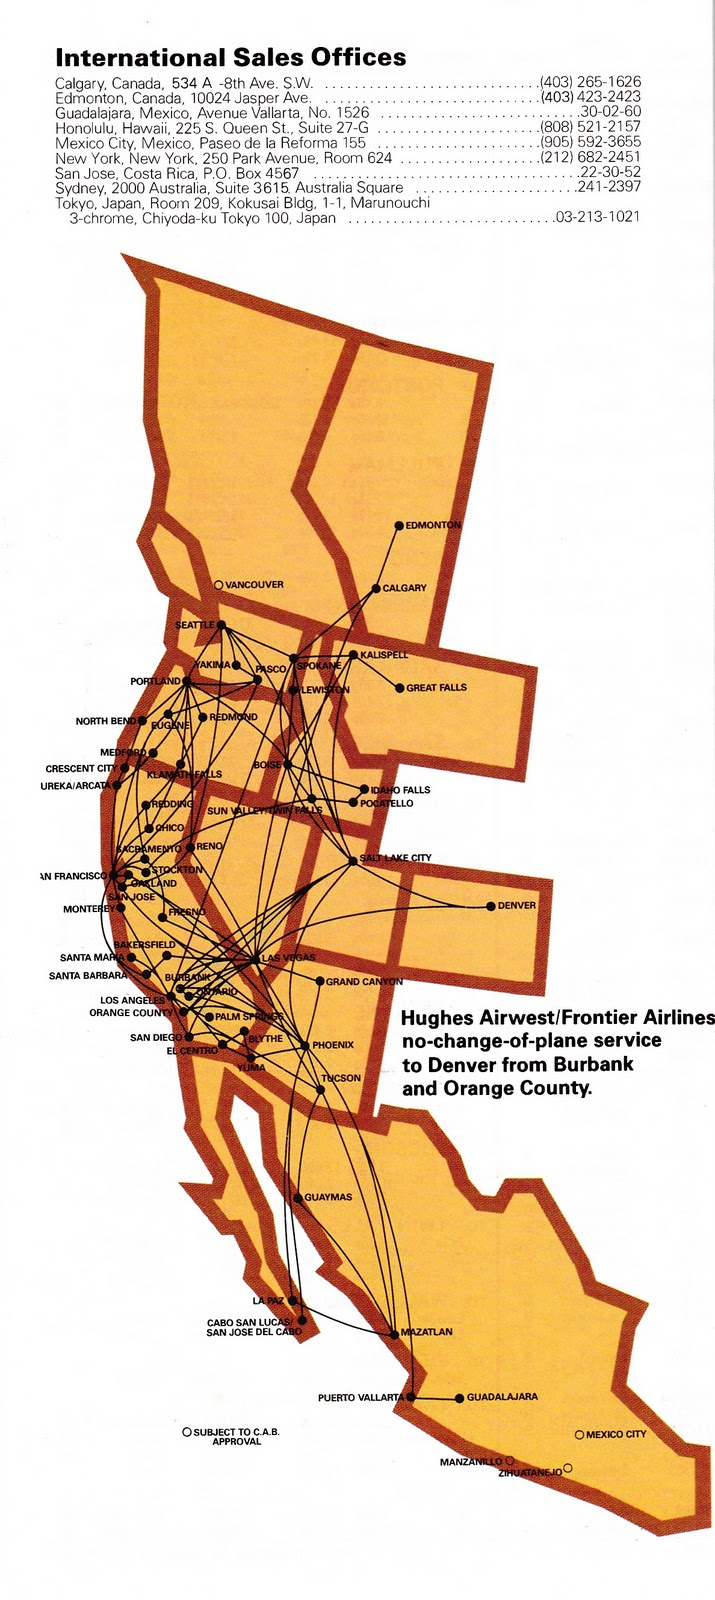 Airline Timetables: Hughes Airwest - January, 1978 on central airlines route map, air niugini route map, iberia route map, twa route map, national airlines route map, eastern air lines route map, horizon air route map, republic airlines route map, delta air lines route map, aeroperu route map, american airlines route map, skywest airlines route map, air south route map, luxair route map, great northern route map, compass airlines route map, british airways route map, alaska airlines route map, germanwings route map, aeroflot route map,